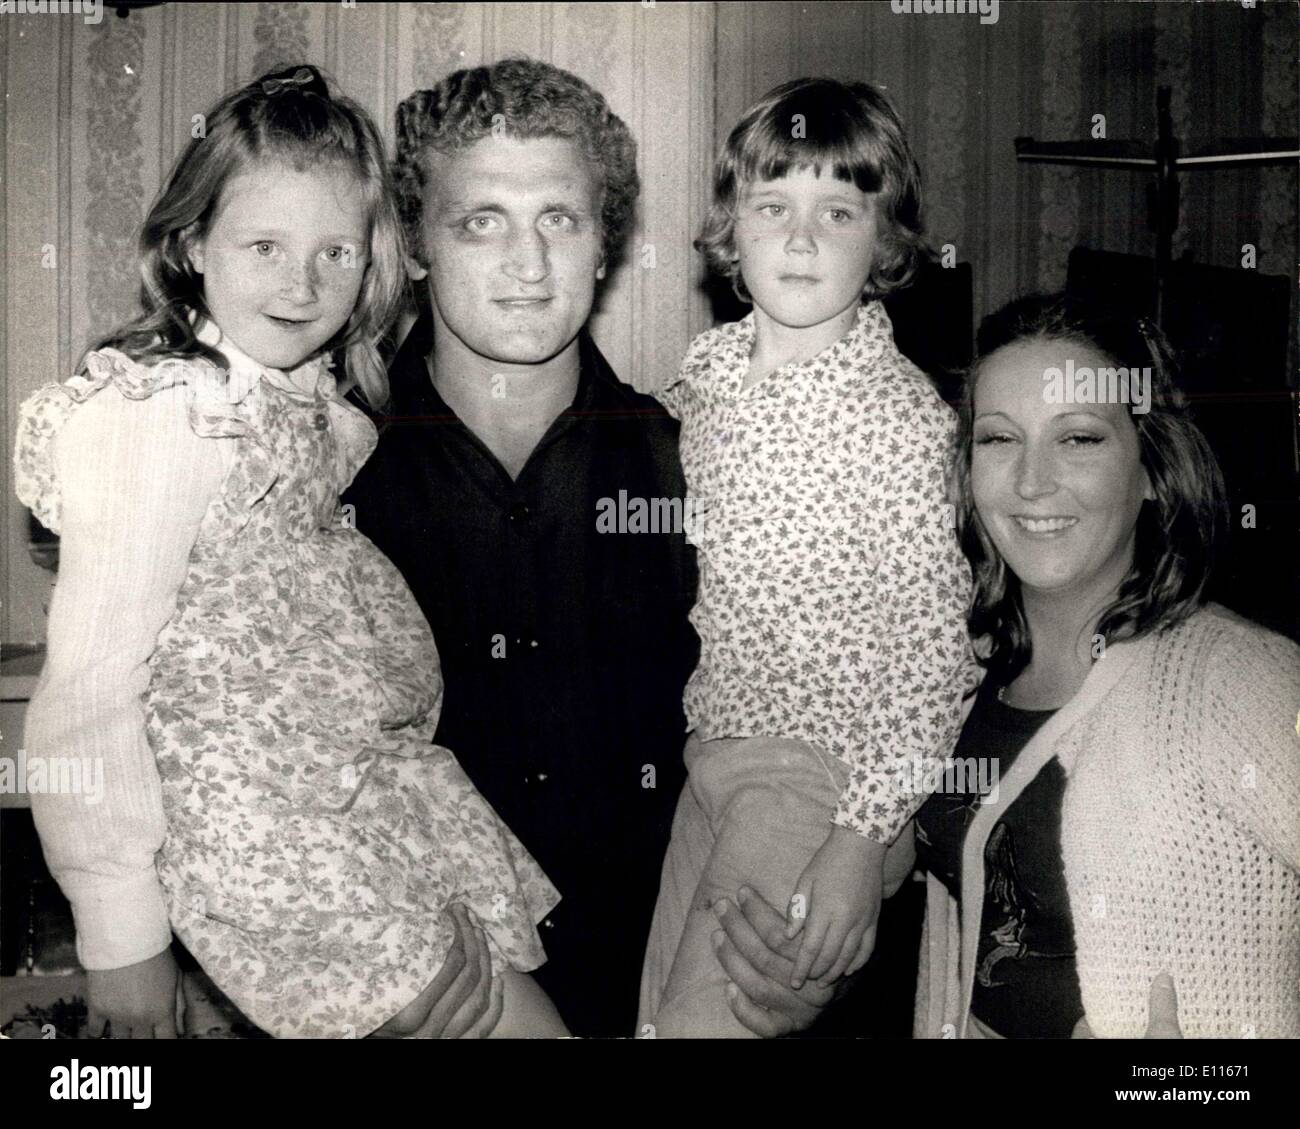 Jan. 05, 1976 - Joe Bugner Quits the ring: Joe Bugner the 25 year old European and Commonwealth heavyweight champion today announced his retirement form the ring and said '' My love for the fight games has gone''. Photo shows Joe Bugner seen with his wife Melody and his two children Amy Jane, 6 and Joseph 4.(picture taken July 4th &5) - Stock Image